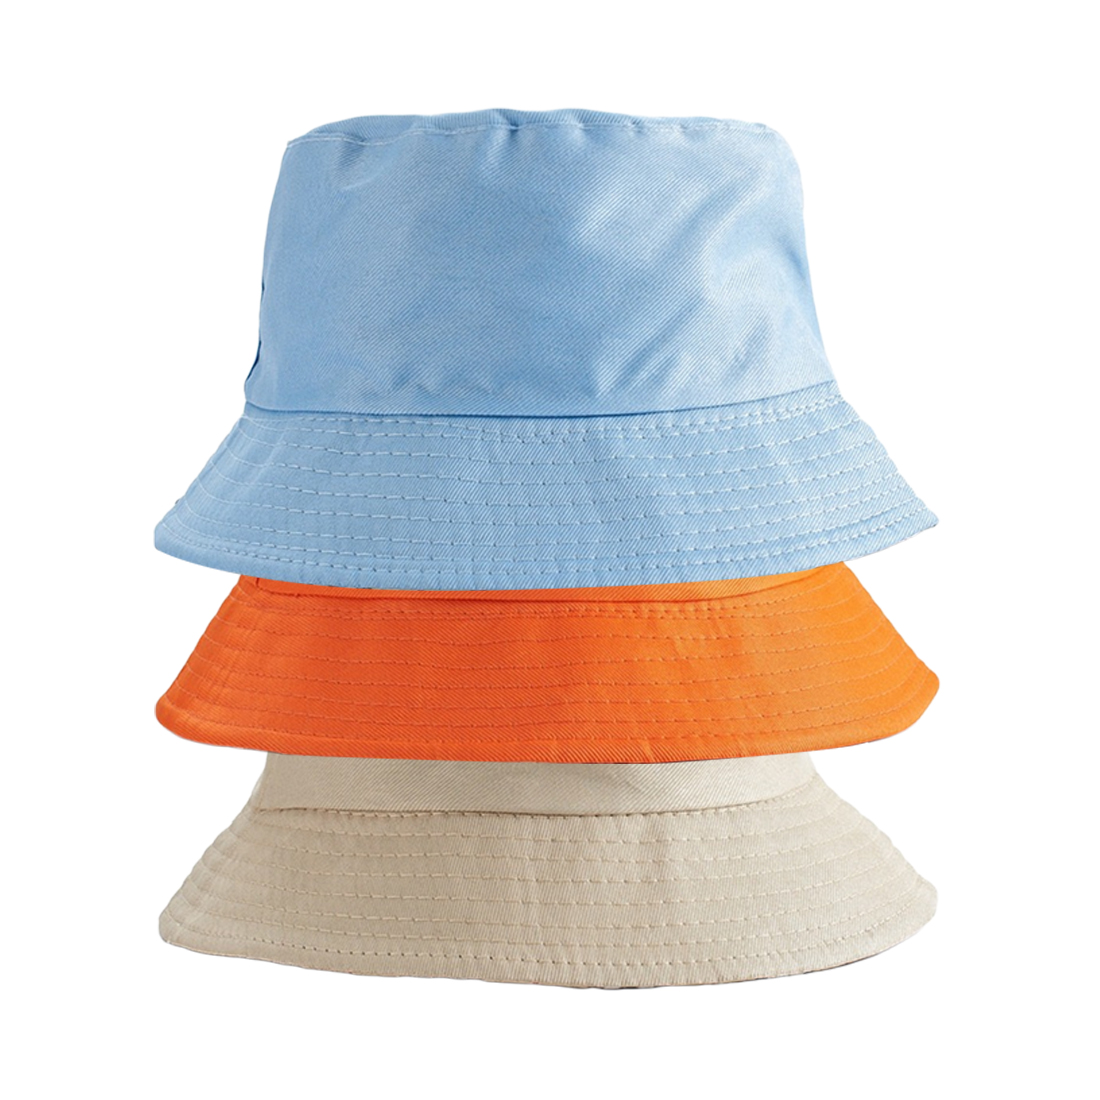 Lovers Double sided  wear bucket hat  Retro cotton fishing Hat Quality sunscreen Flat Ladies Sun Hat